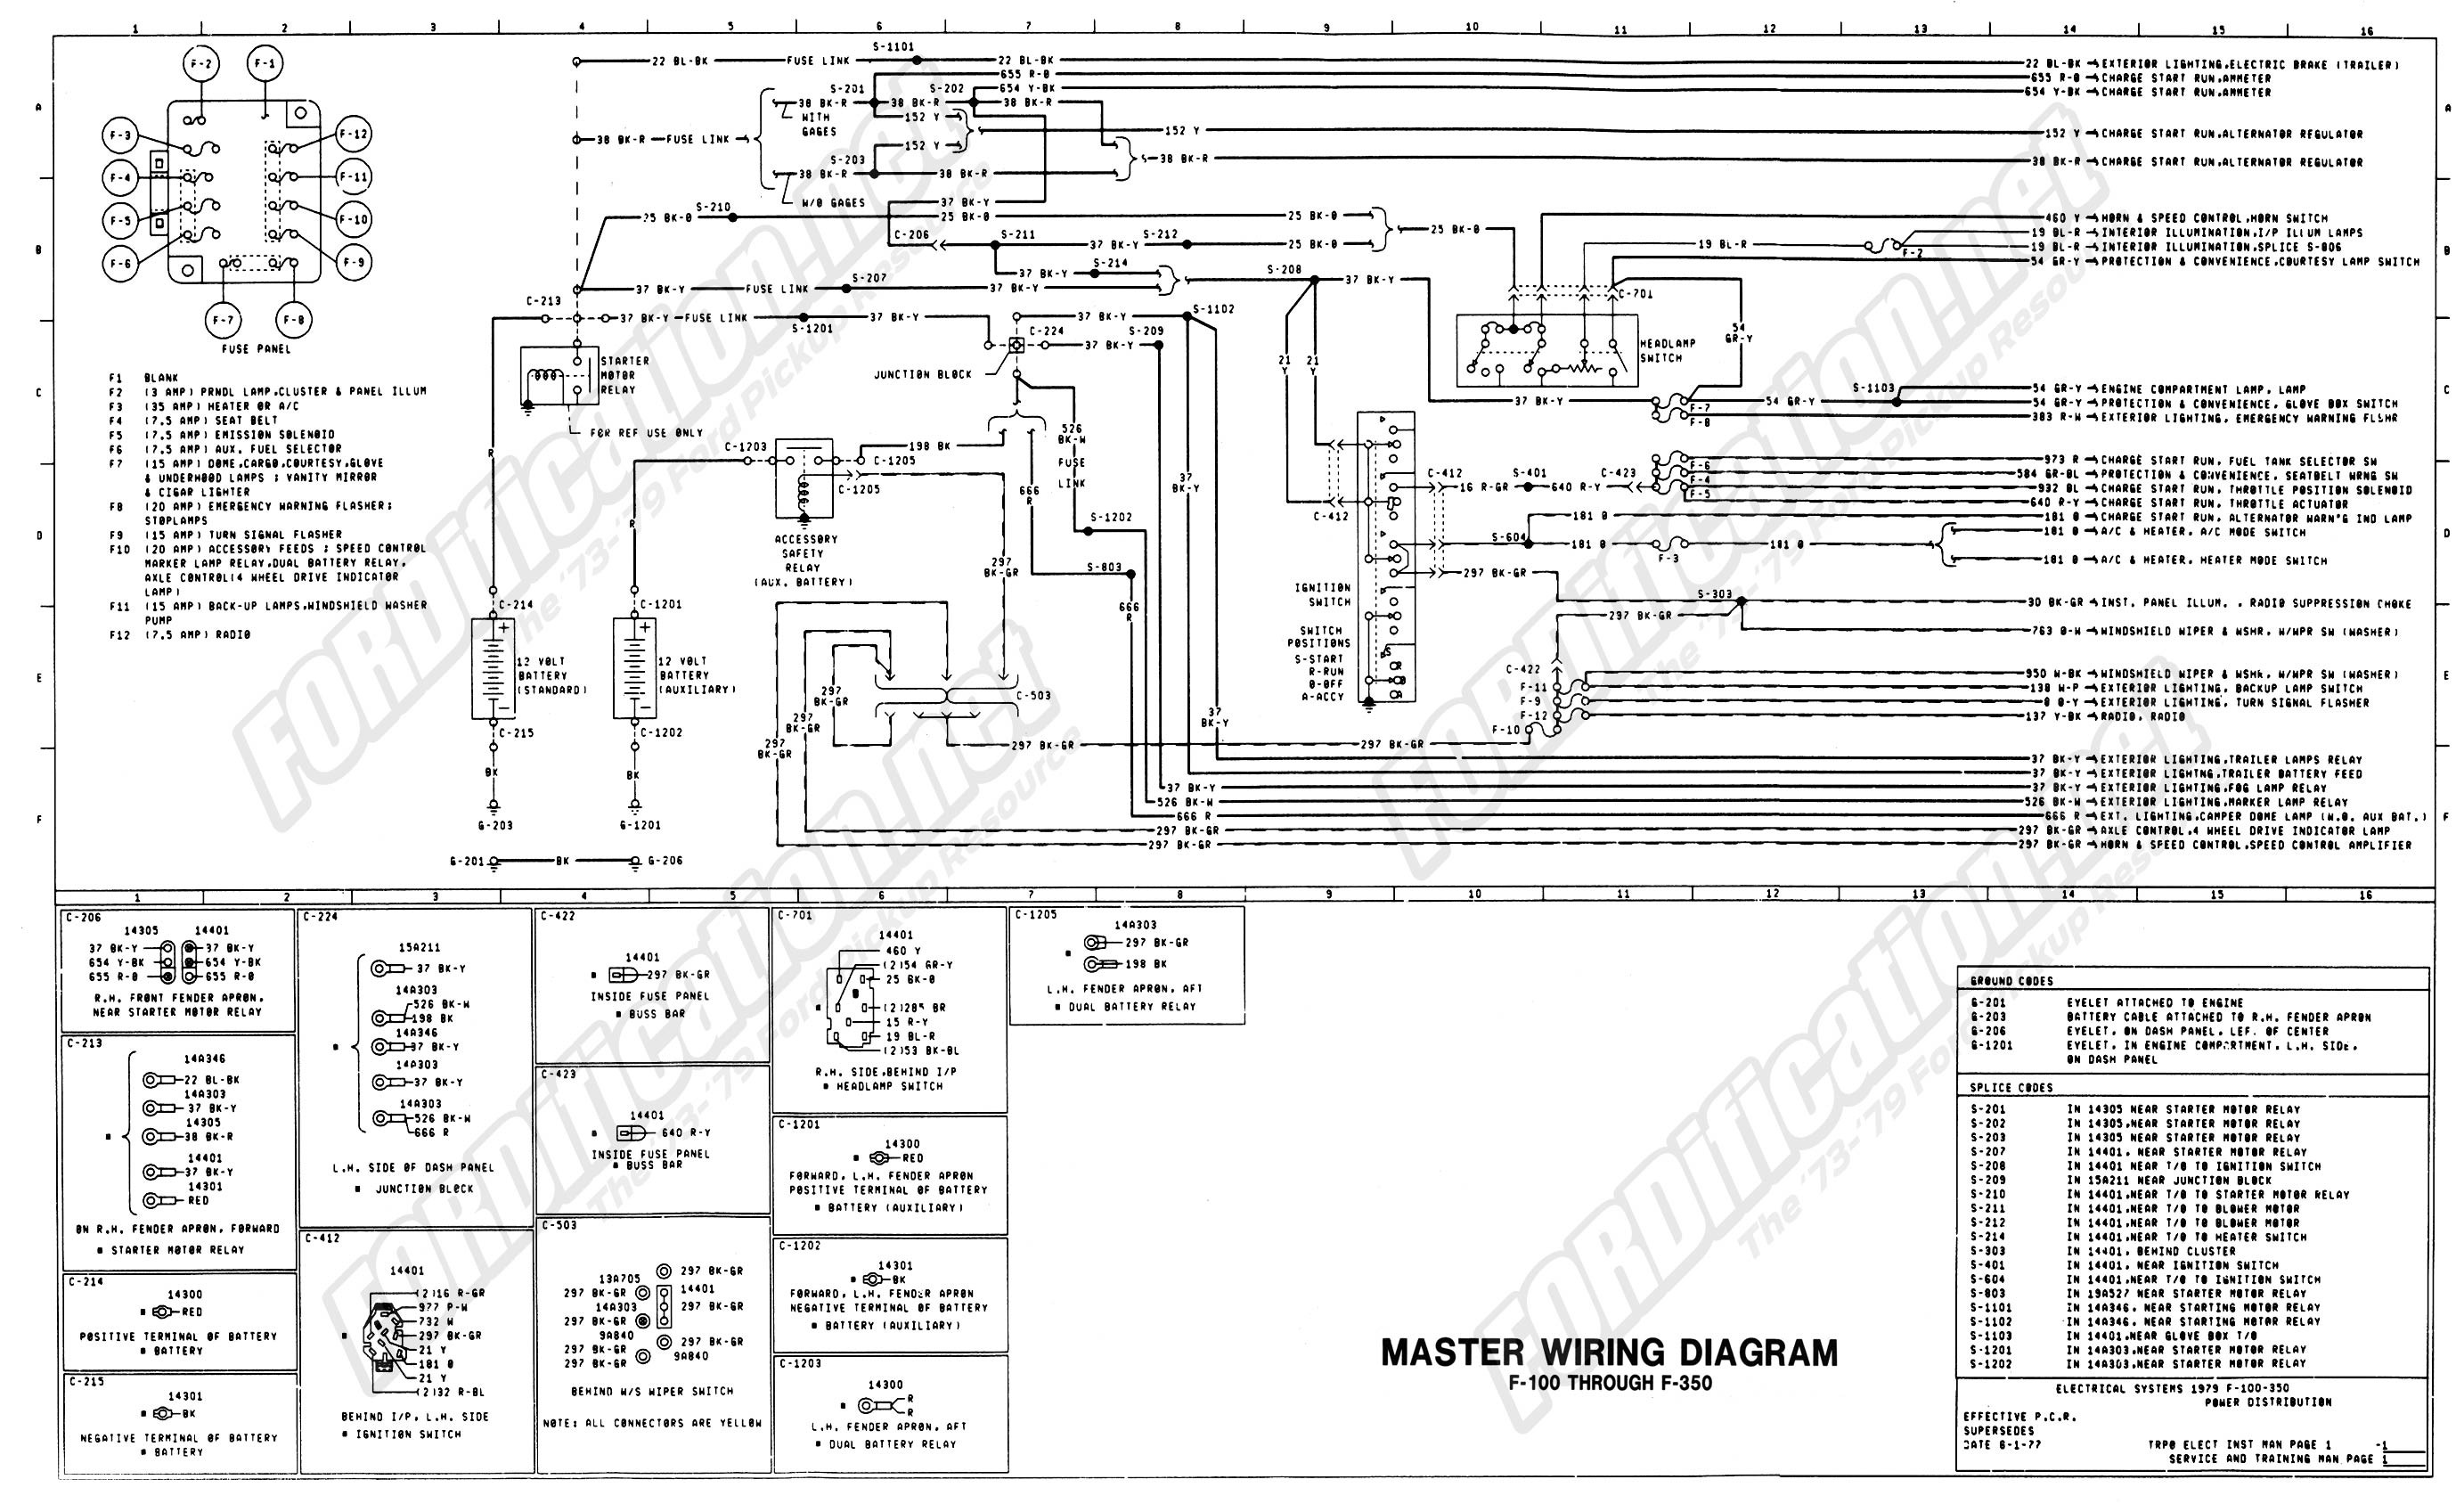 1998 ford F150 Pickup Truck Car Radio Wiring Diagram Kia